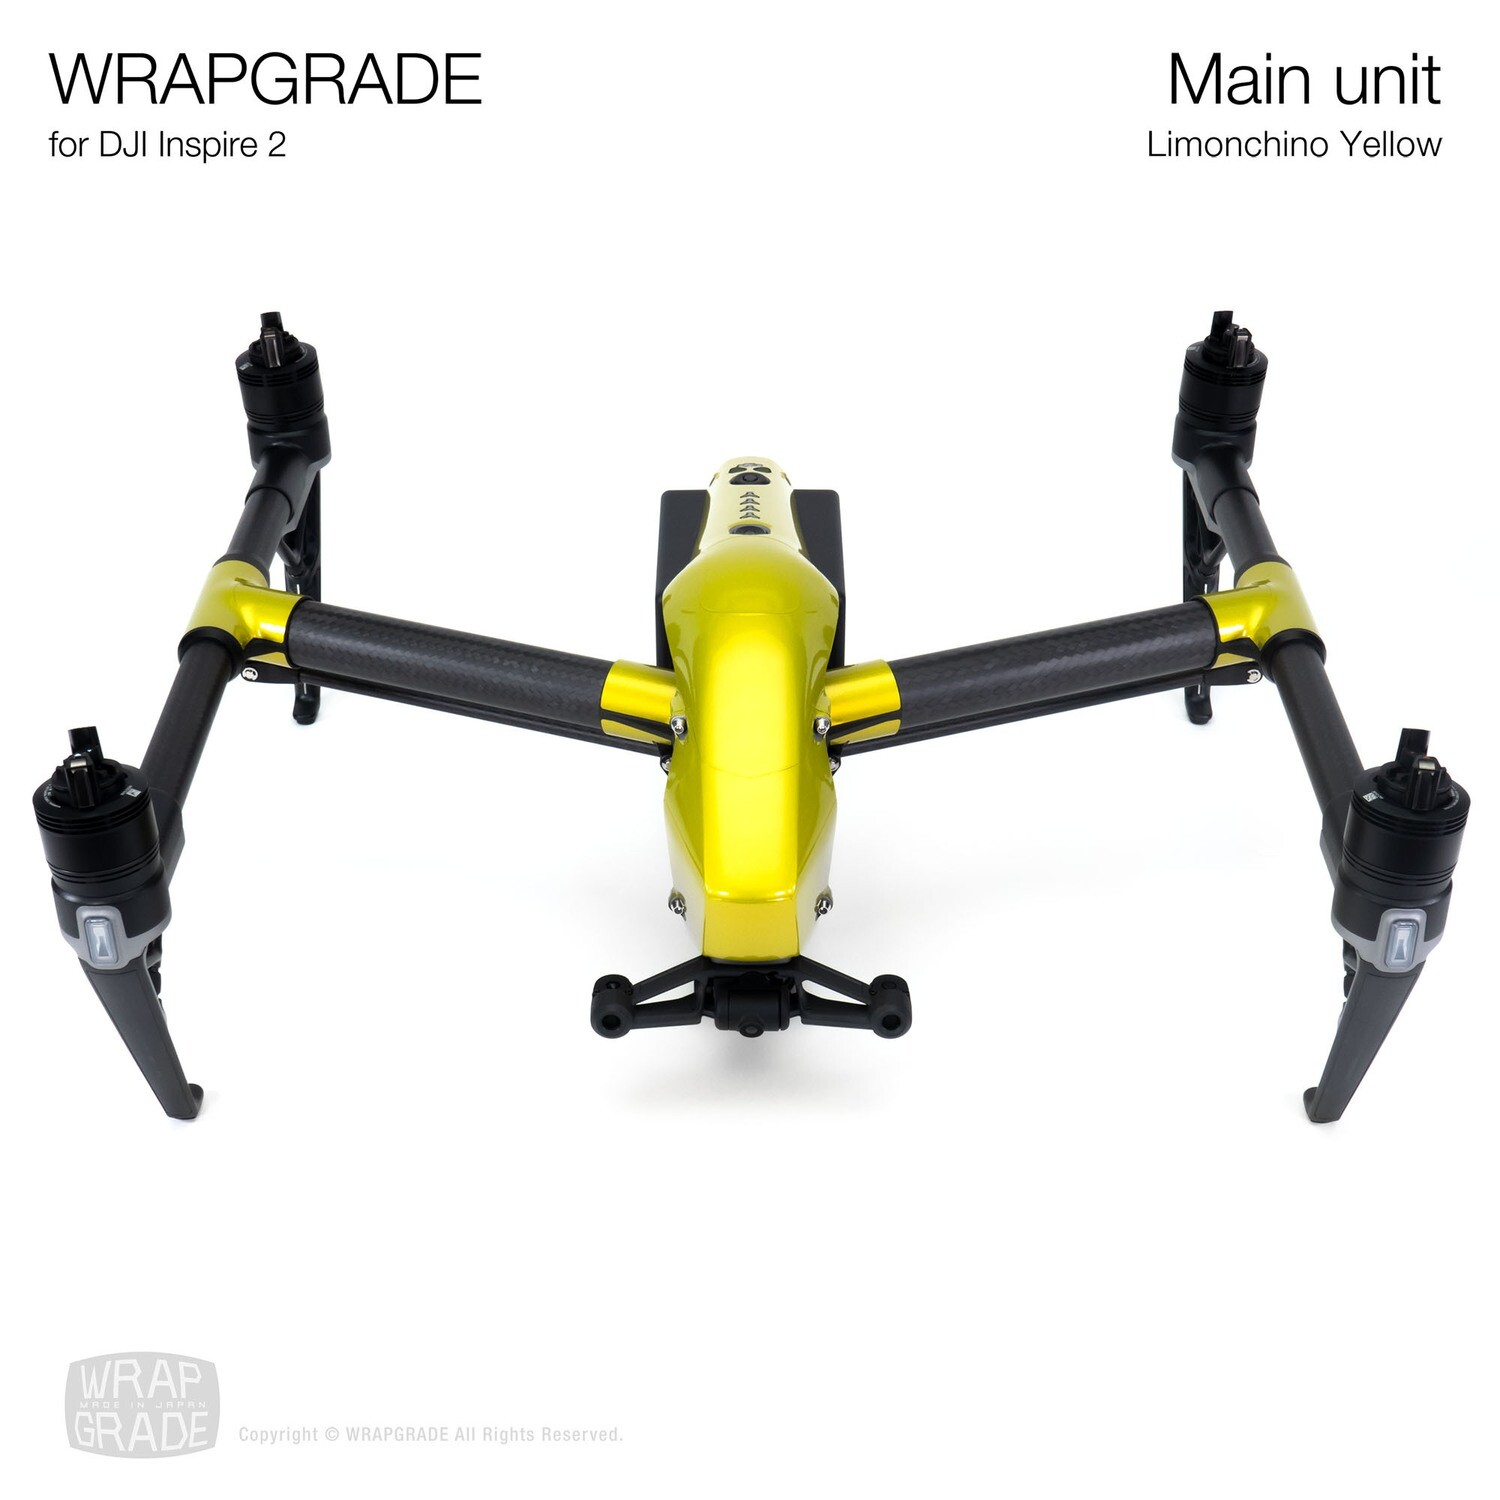 WRAPGRADE for DJI Inspire 2 | Main Unit (LIMIONCINO YELLOW)